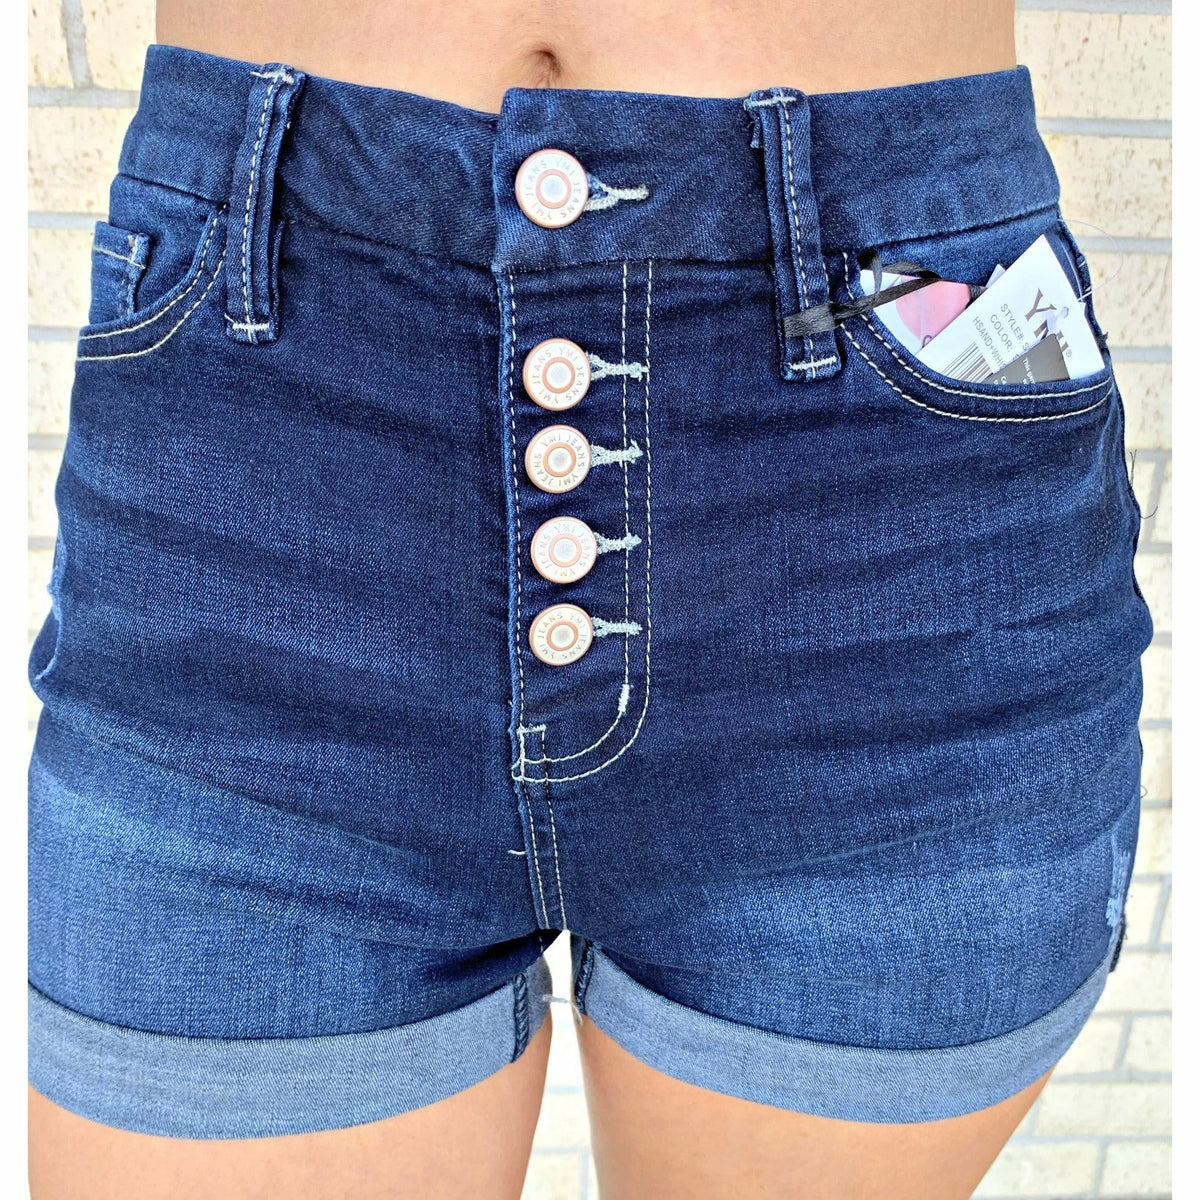 Katie Dark Denim YMI Shorts